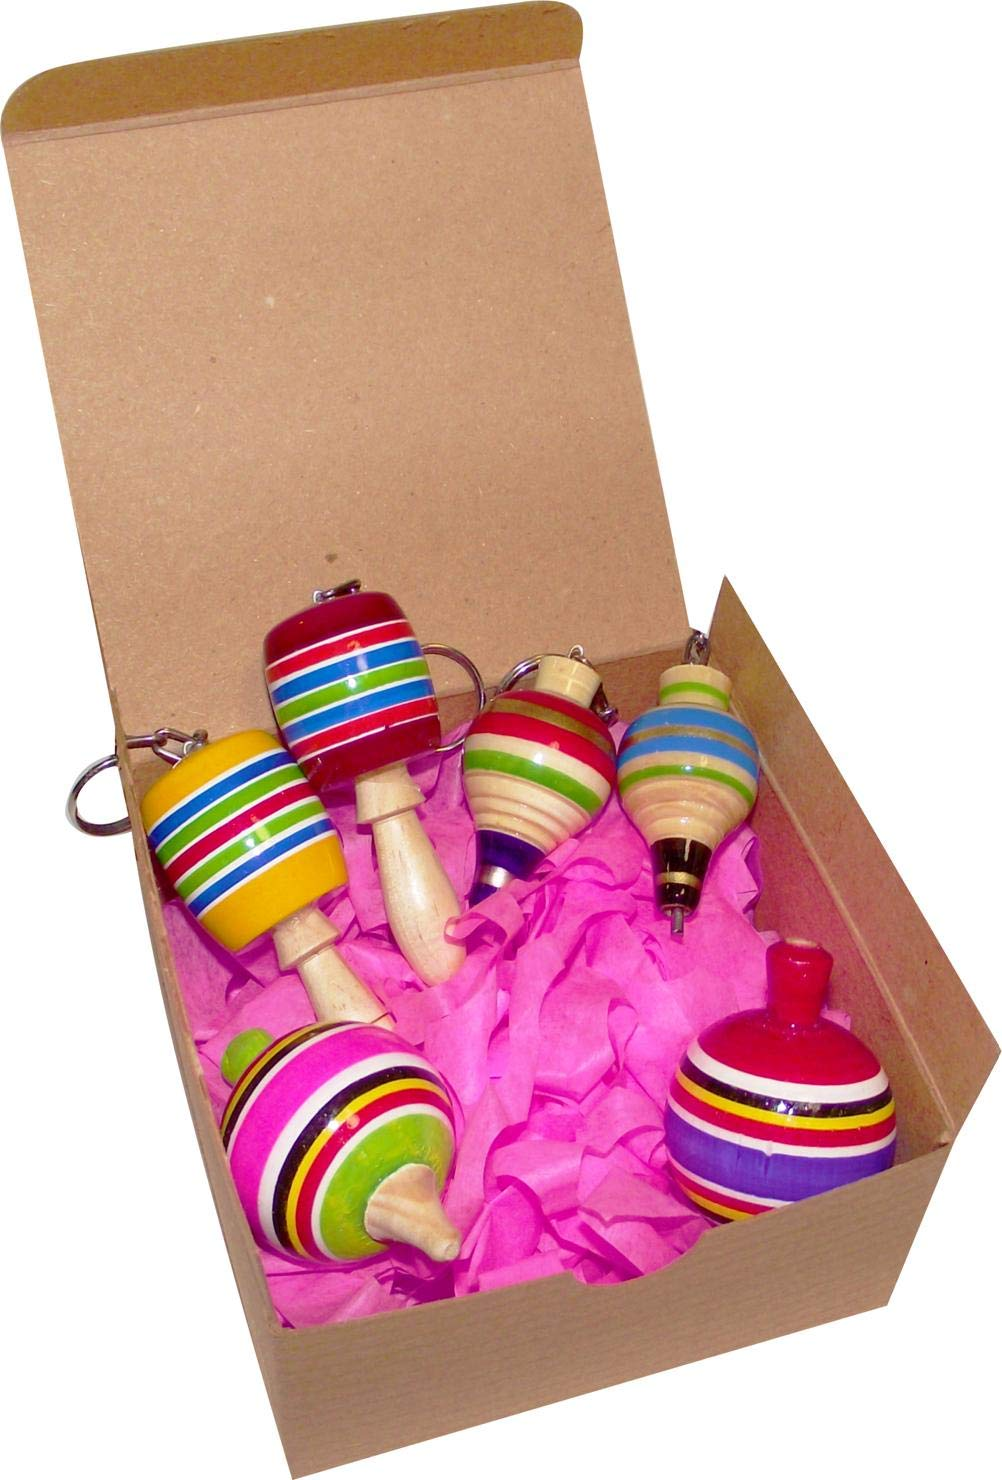 MoreFiesta Fine Mini Wooden Balero, Spin top and Trompo Keychain - Six Traditional Mexican Miniature Toys Box by MoreFiesta (Image #2)